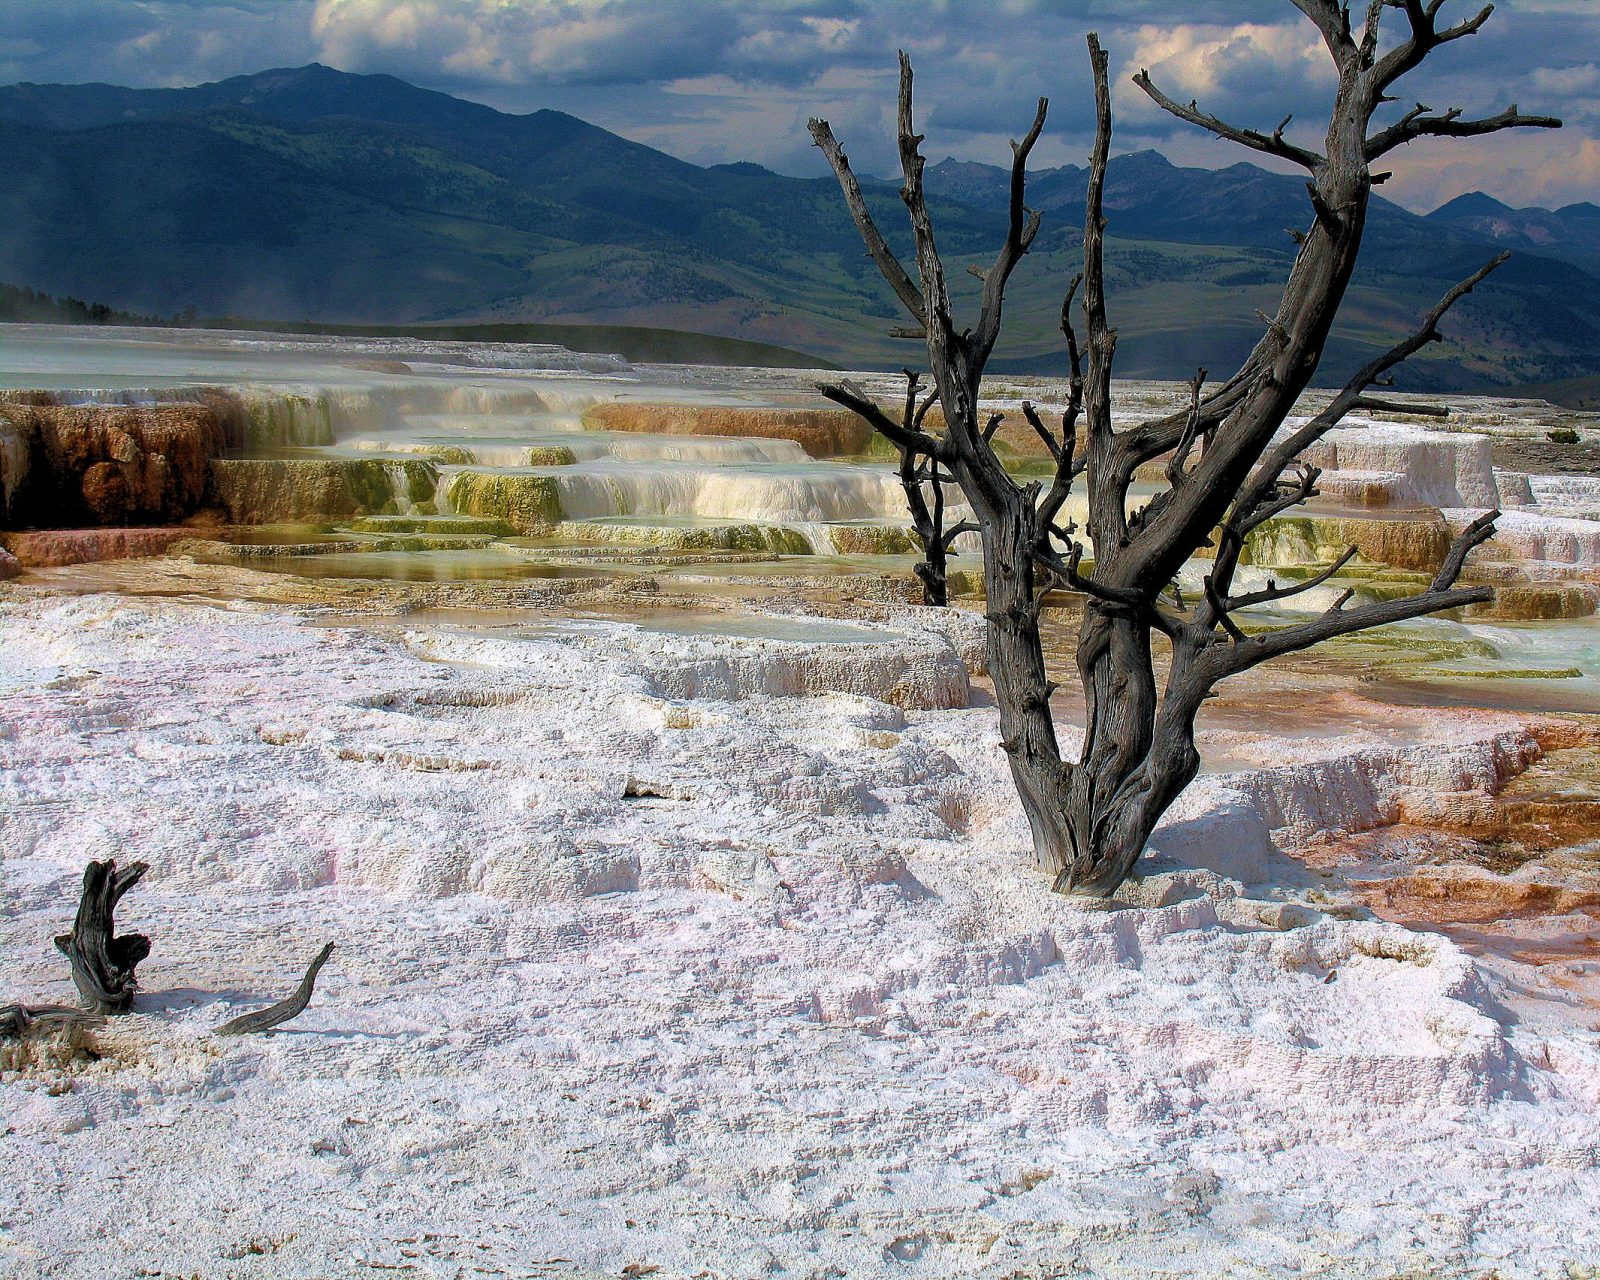 Mammoth Hotsprings Yellowstone National Park